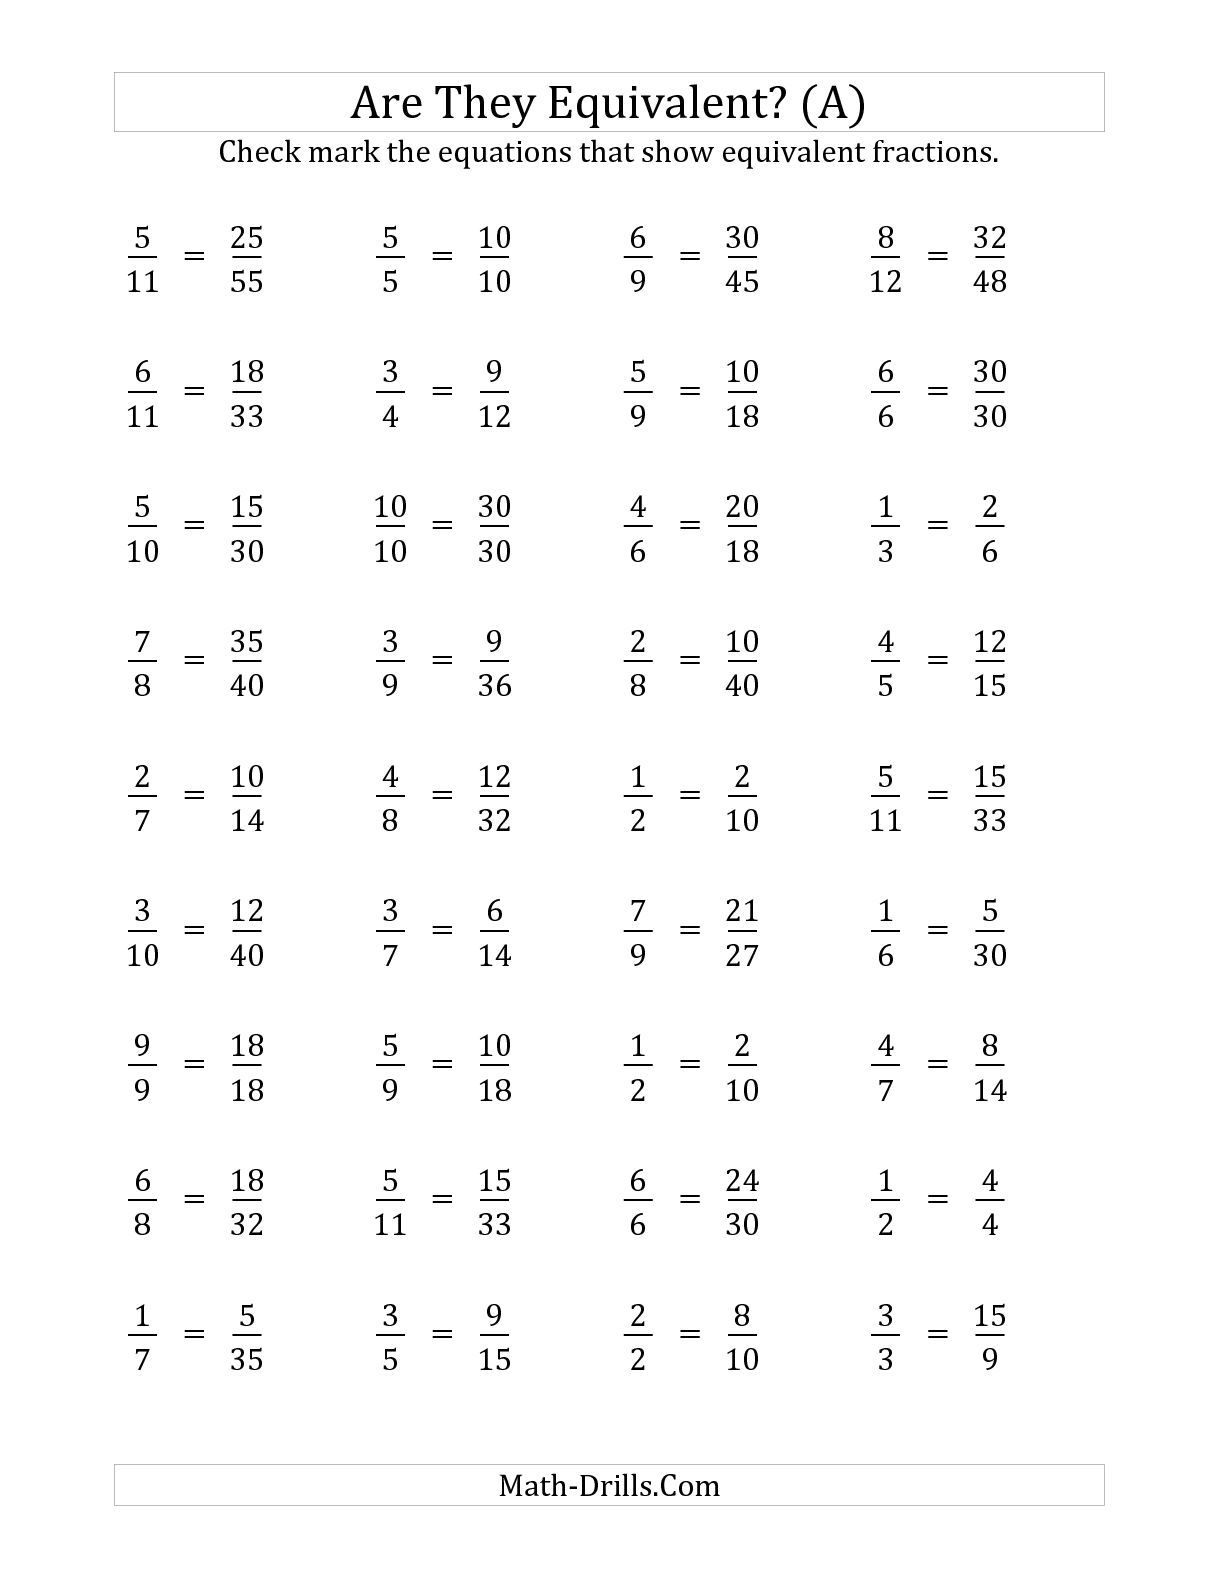 The Are These Fractions Equivalent Multiplier Range 2 To